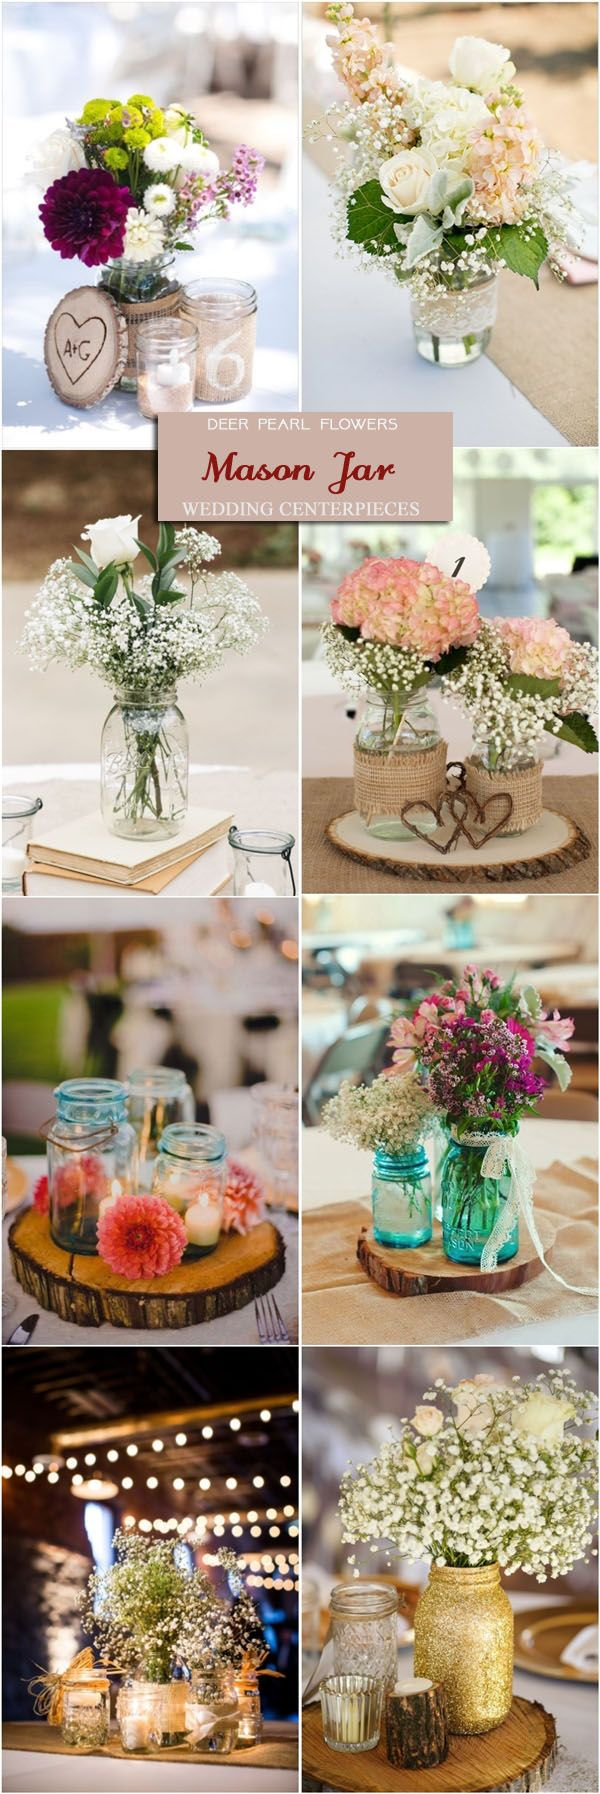 Centerpiece Ideas best 25+ centerpiece ideas ideas on pinterest | simple wedding